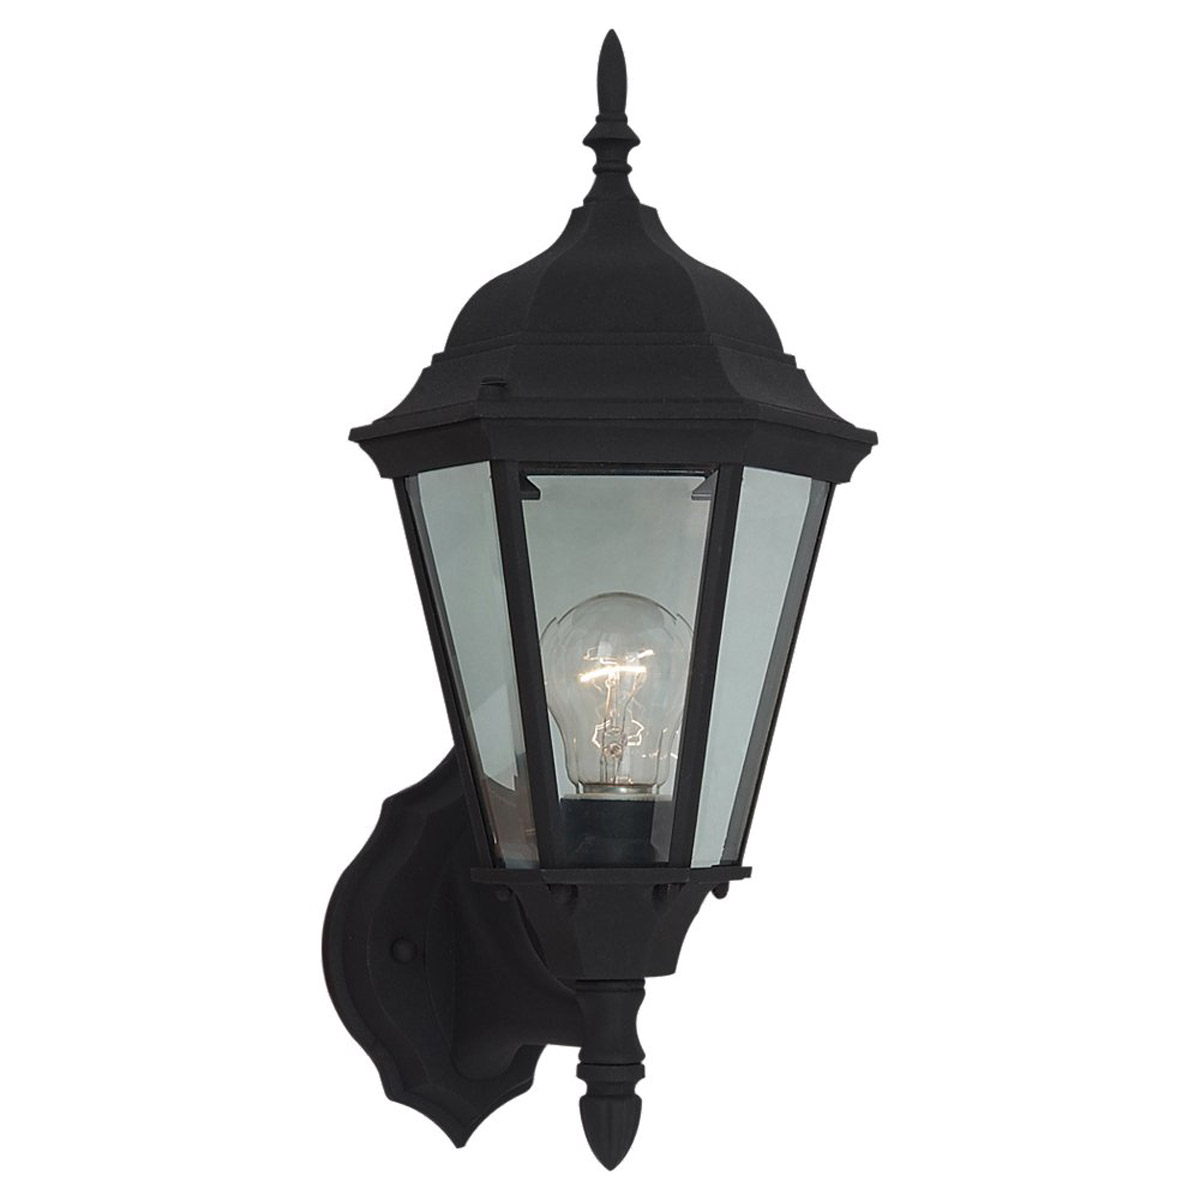 Sea Gull Lighting Bakersville 1 Light Outdoor Wall Lantern in Black 88941-12